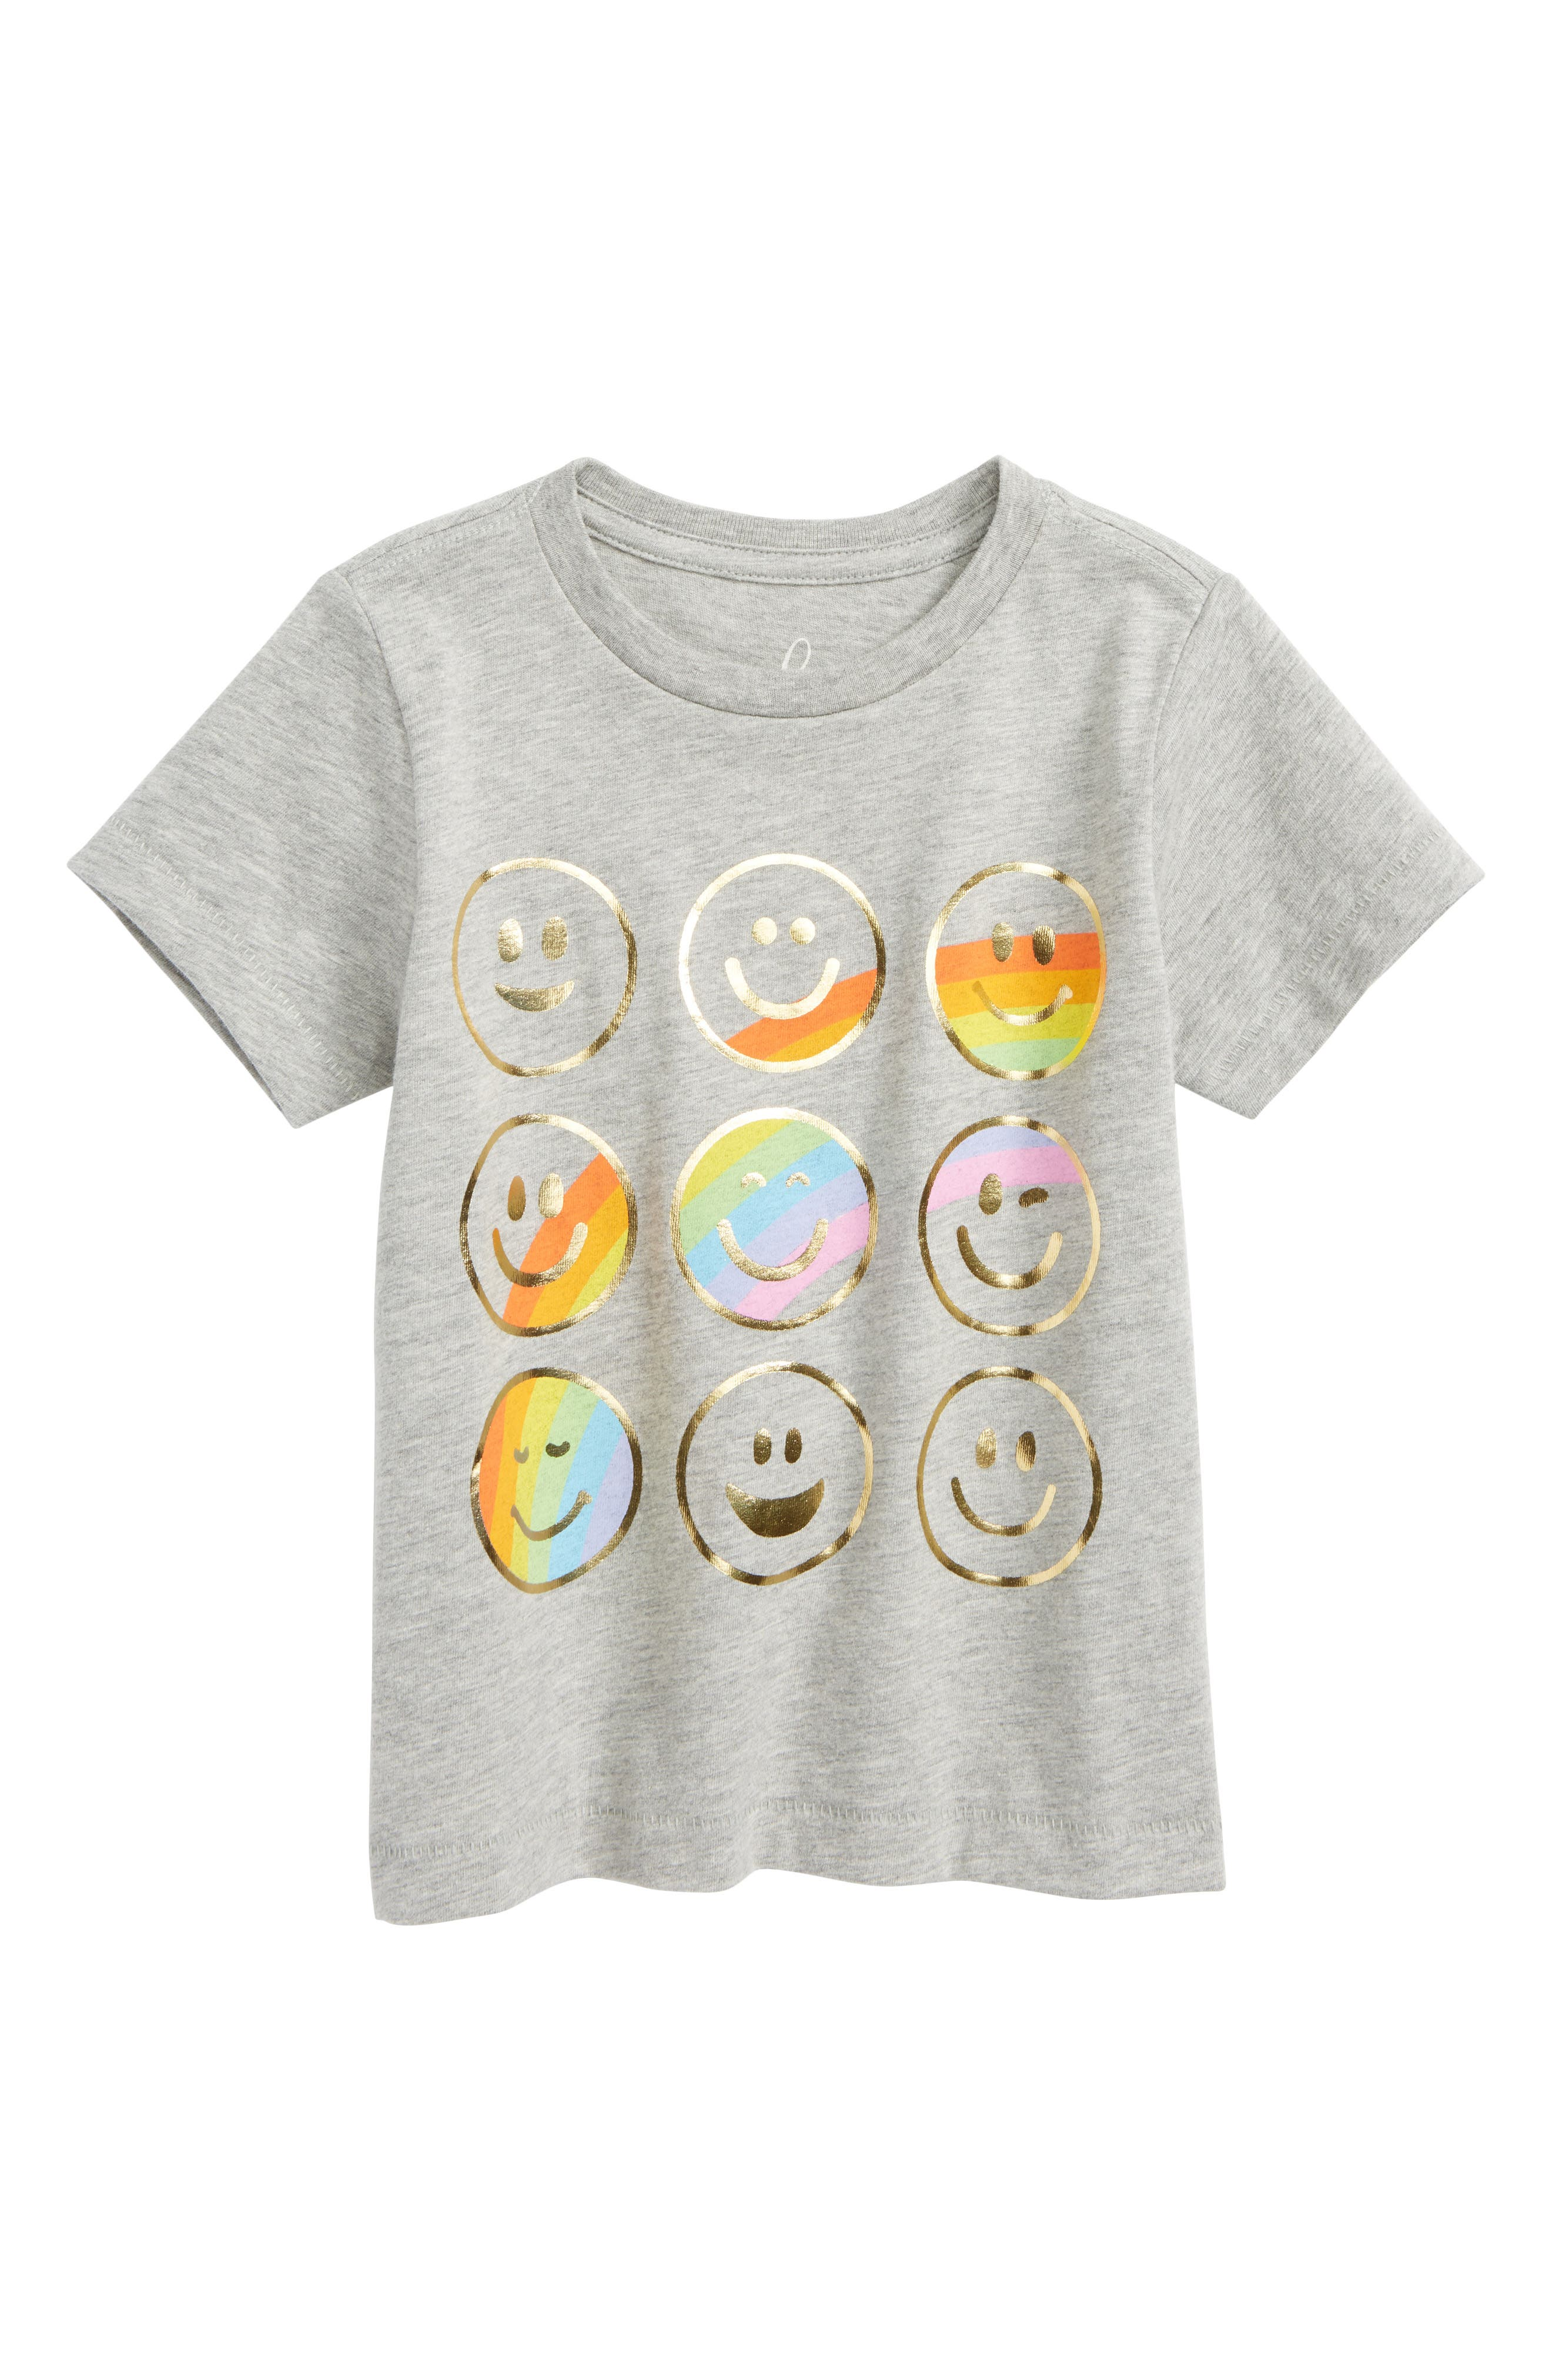 Emoticons Graphic Tee,                         Main,                         color, Light Grey Heather